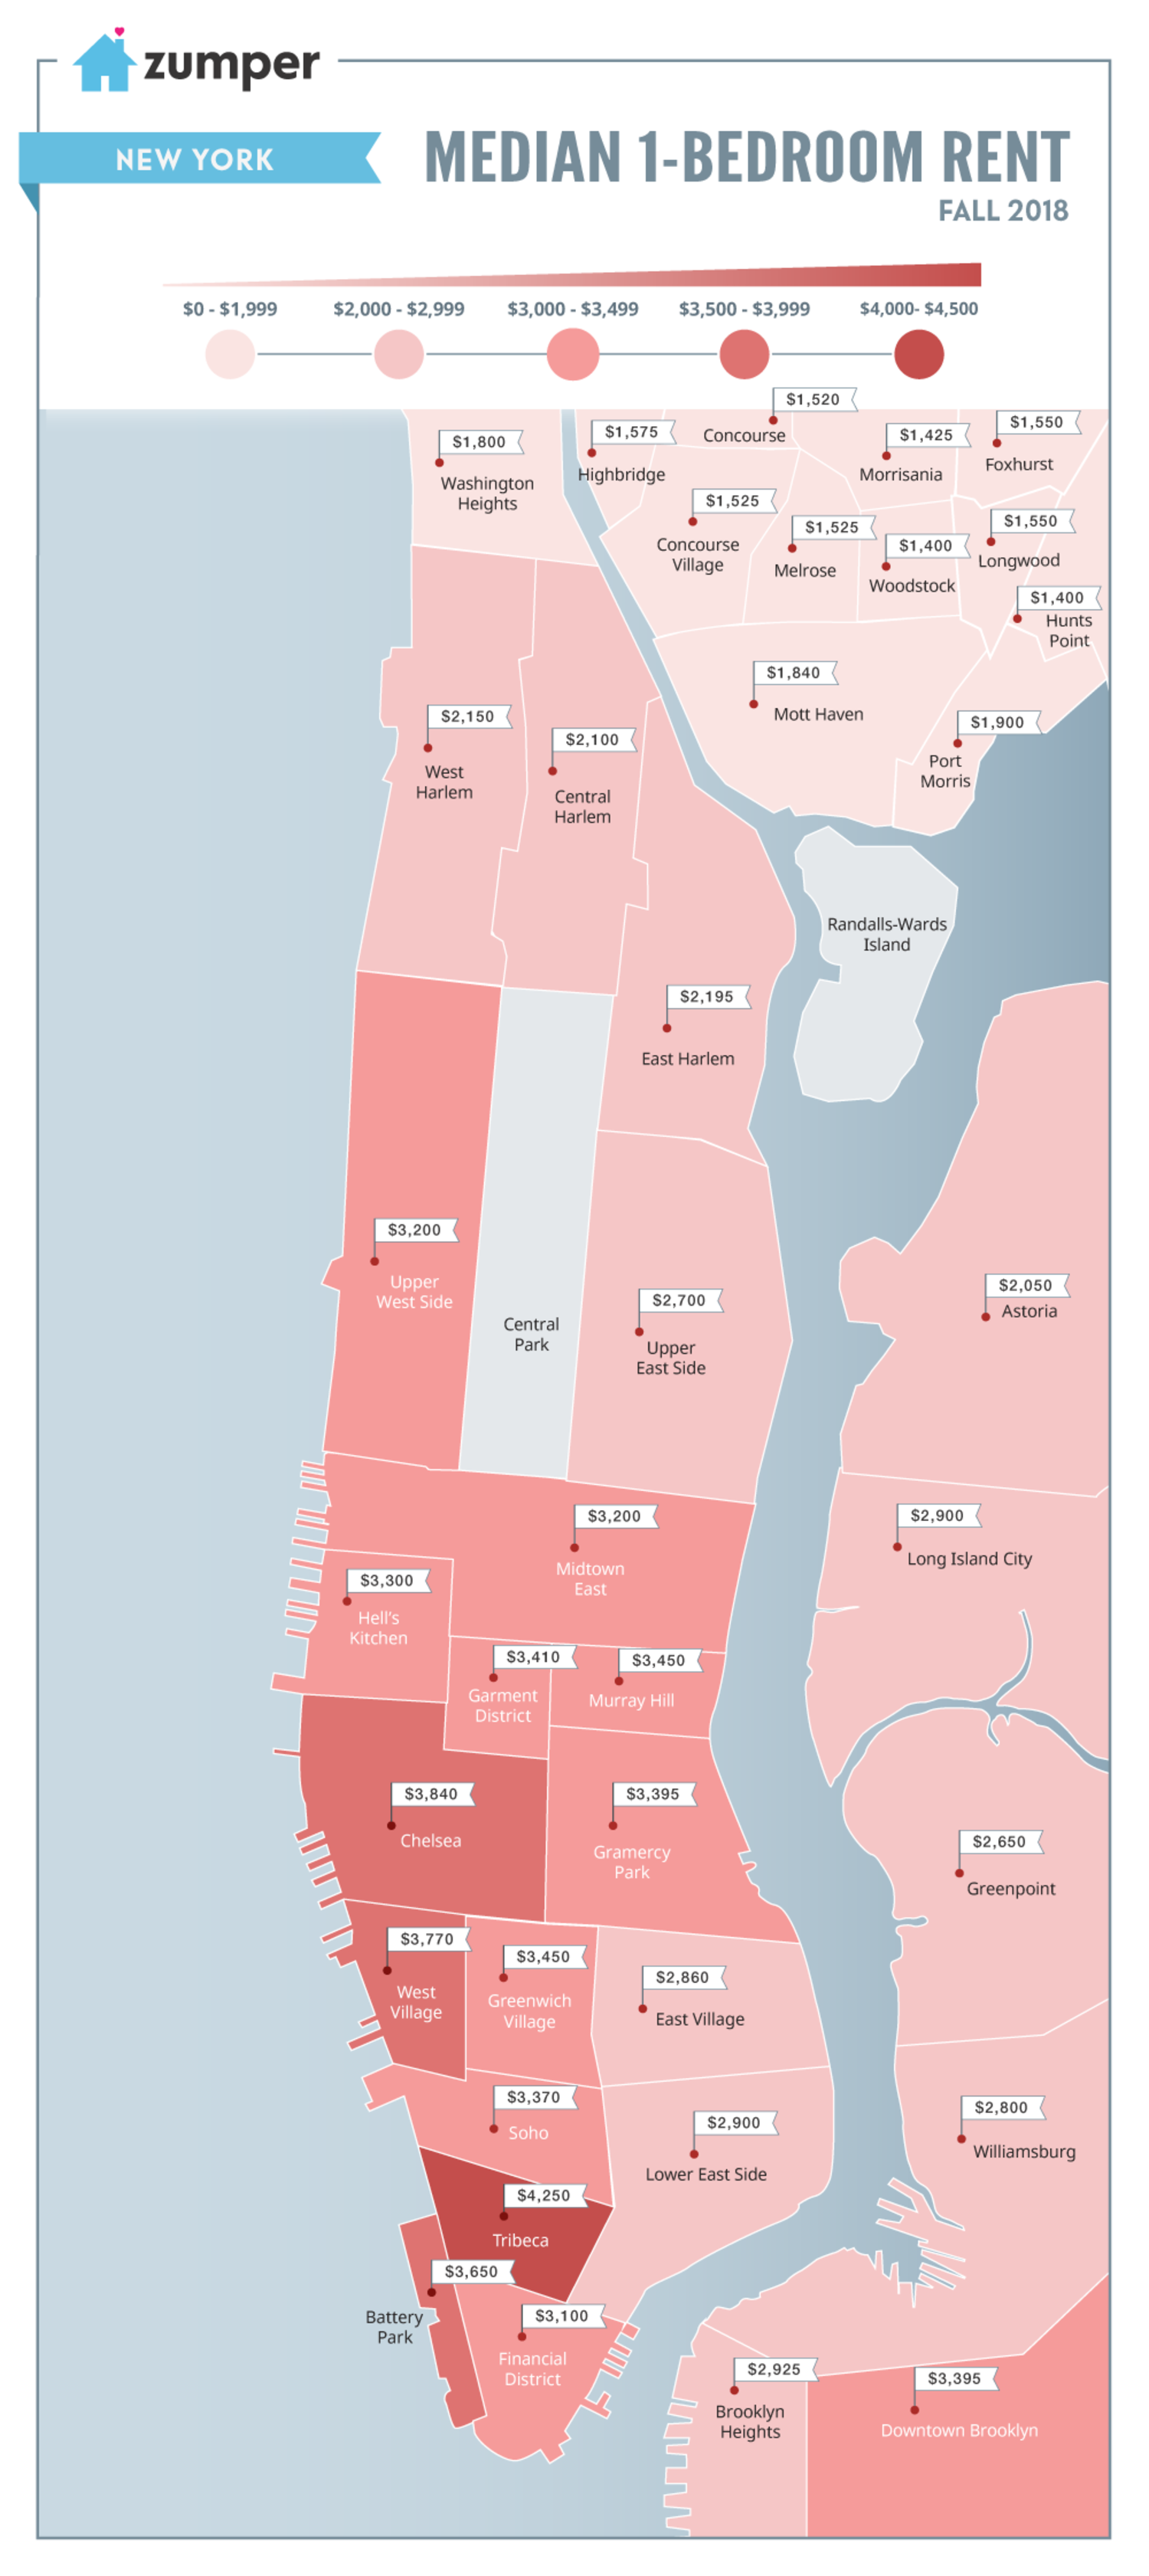 Manhattan Median 1-Bedroom Rent Fall 2018